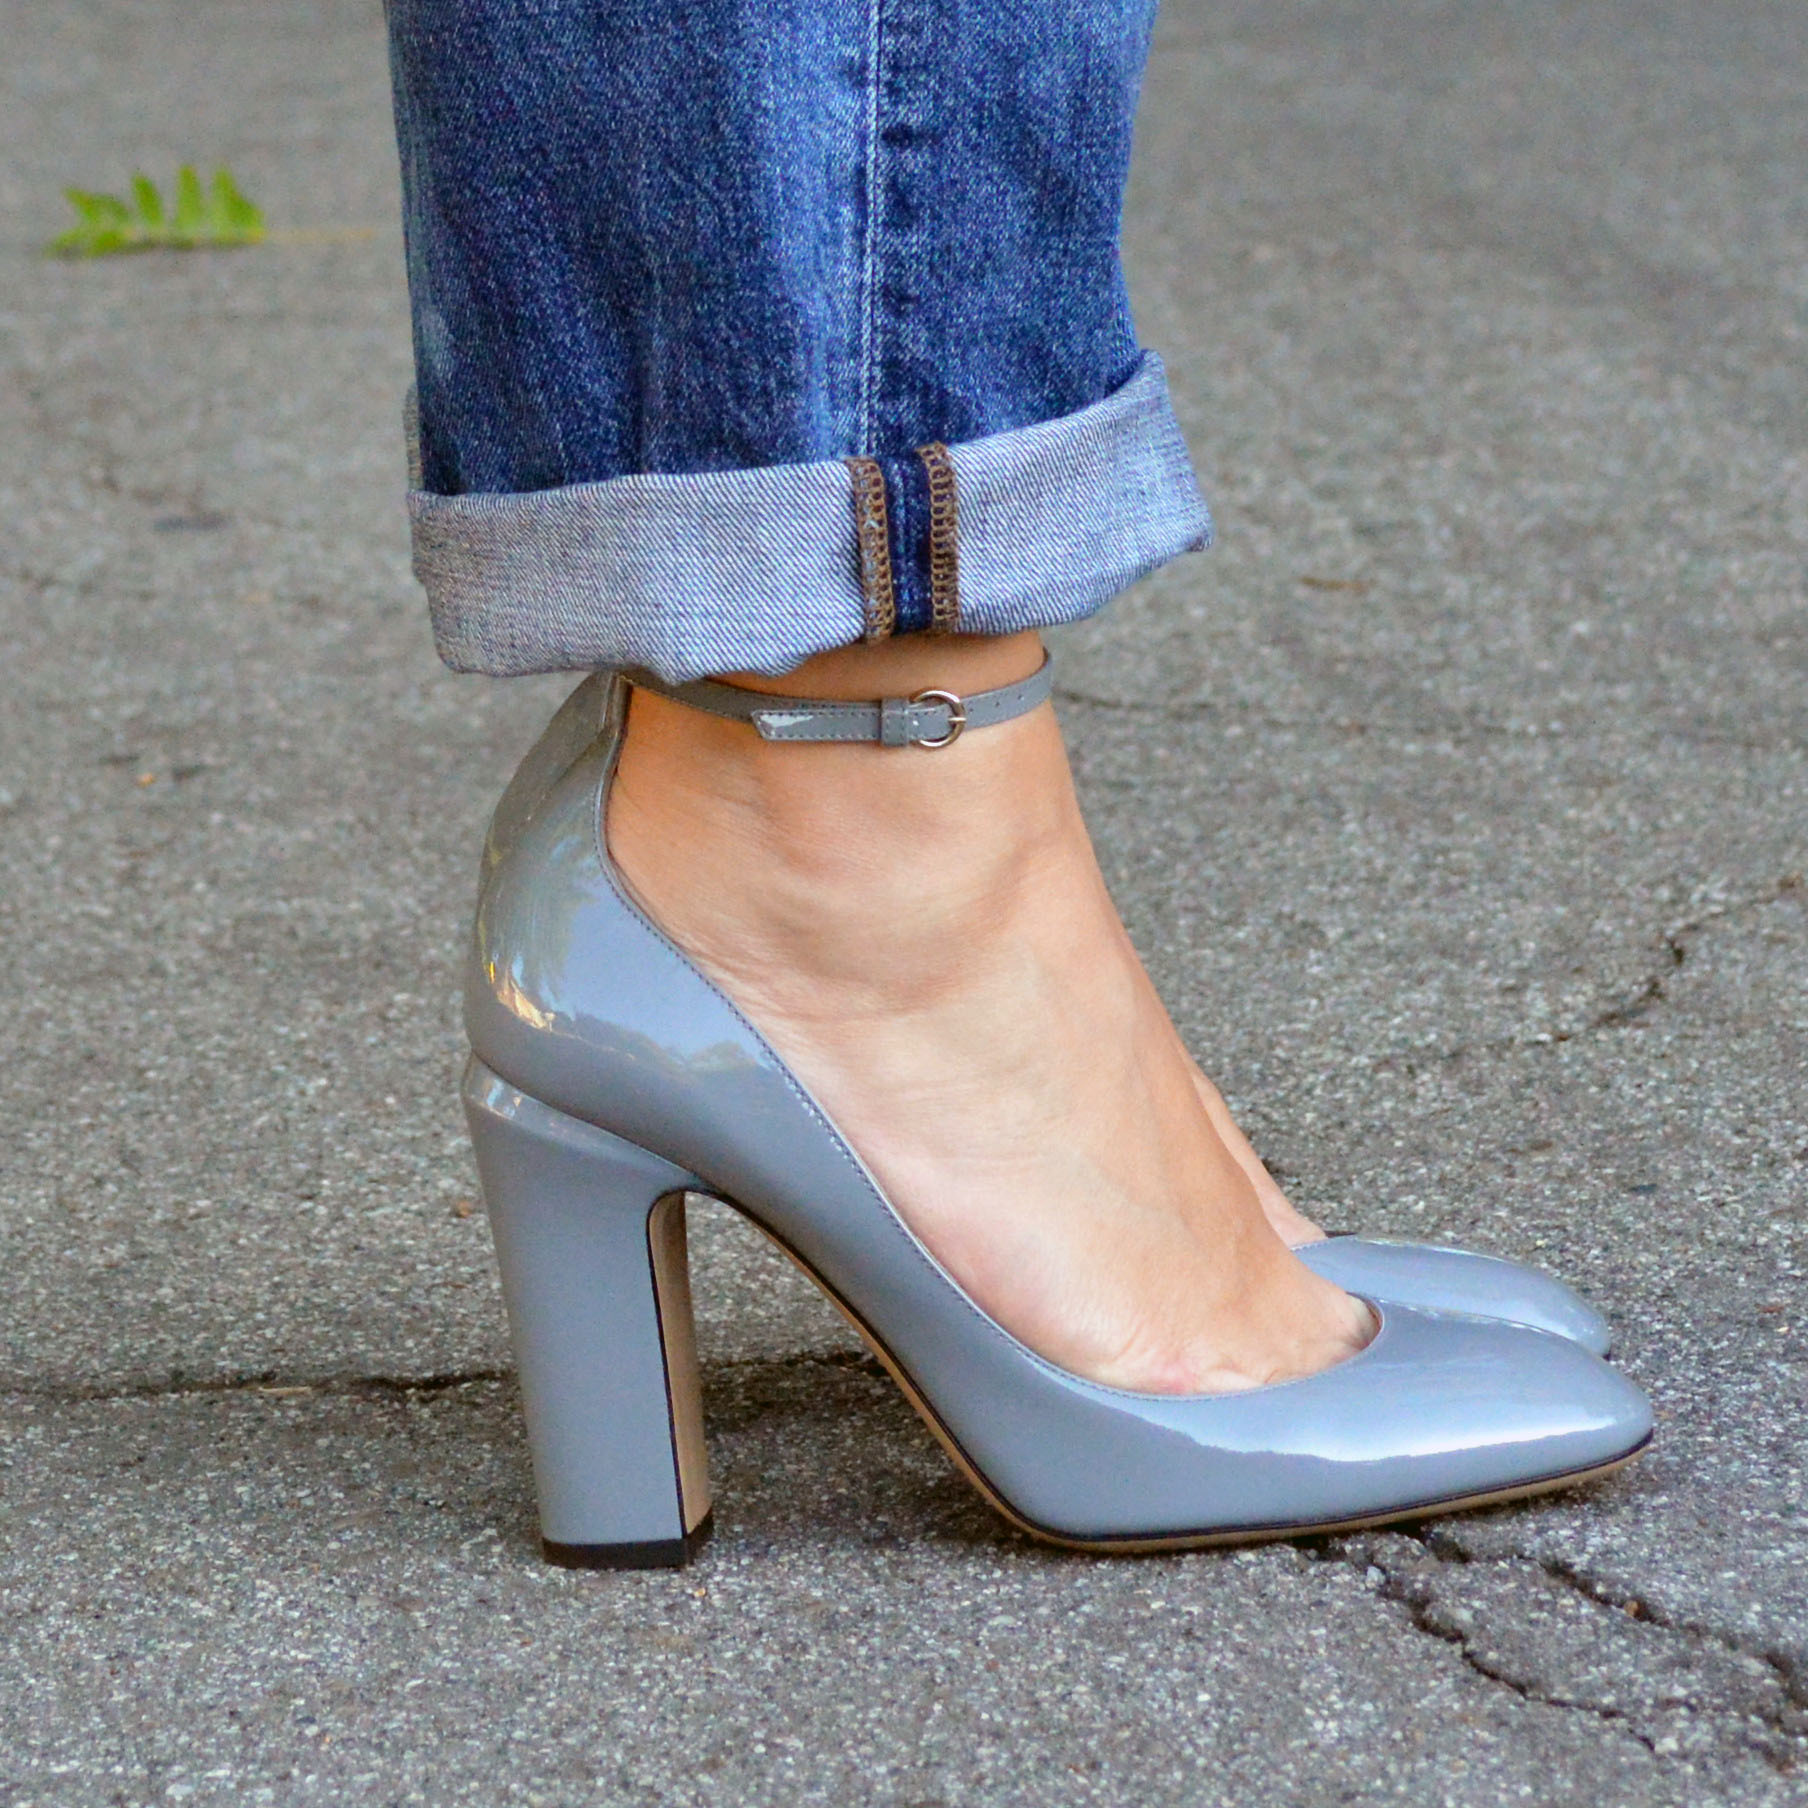 Baggy Jeans And Valentino Tango Pumps Bay Area Fashionista